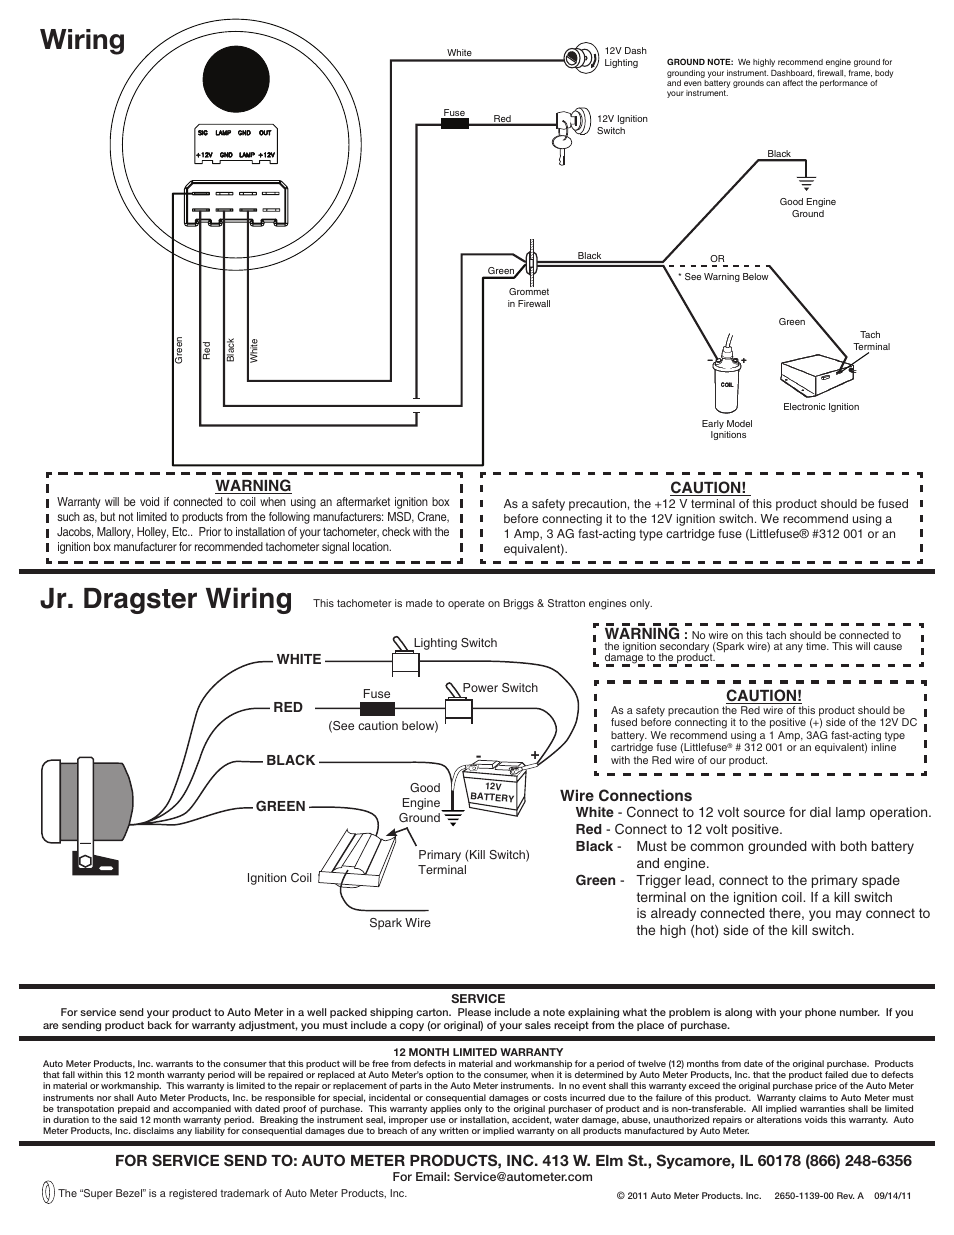 medium resolution of wiring jr dragster wiring auto meter 5780 user manual page 2